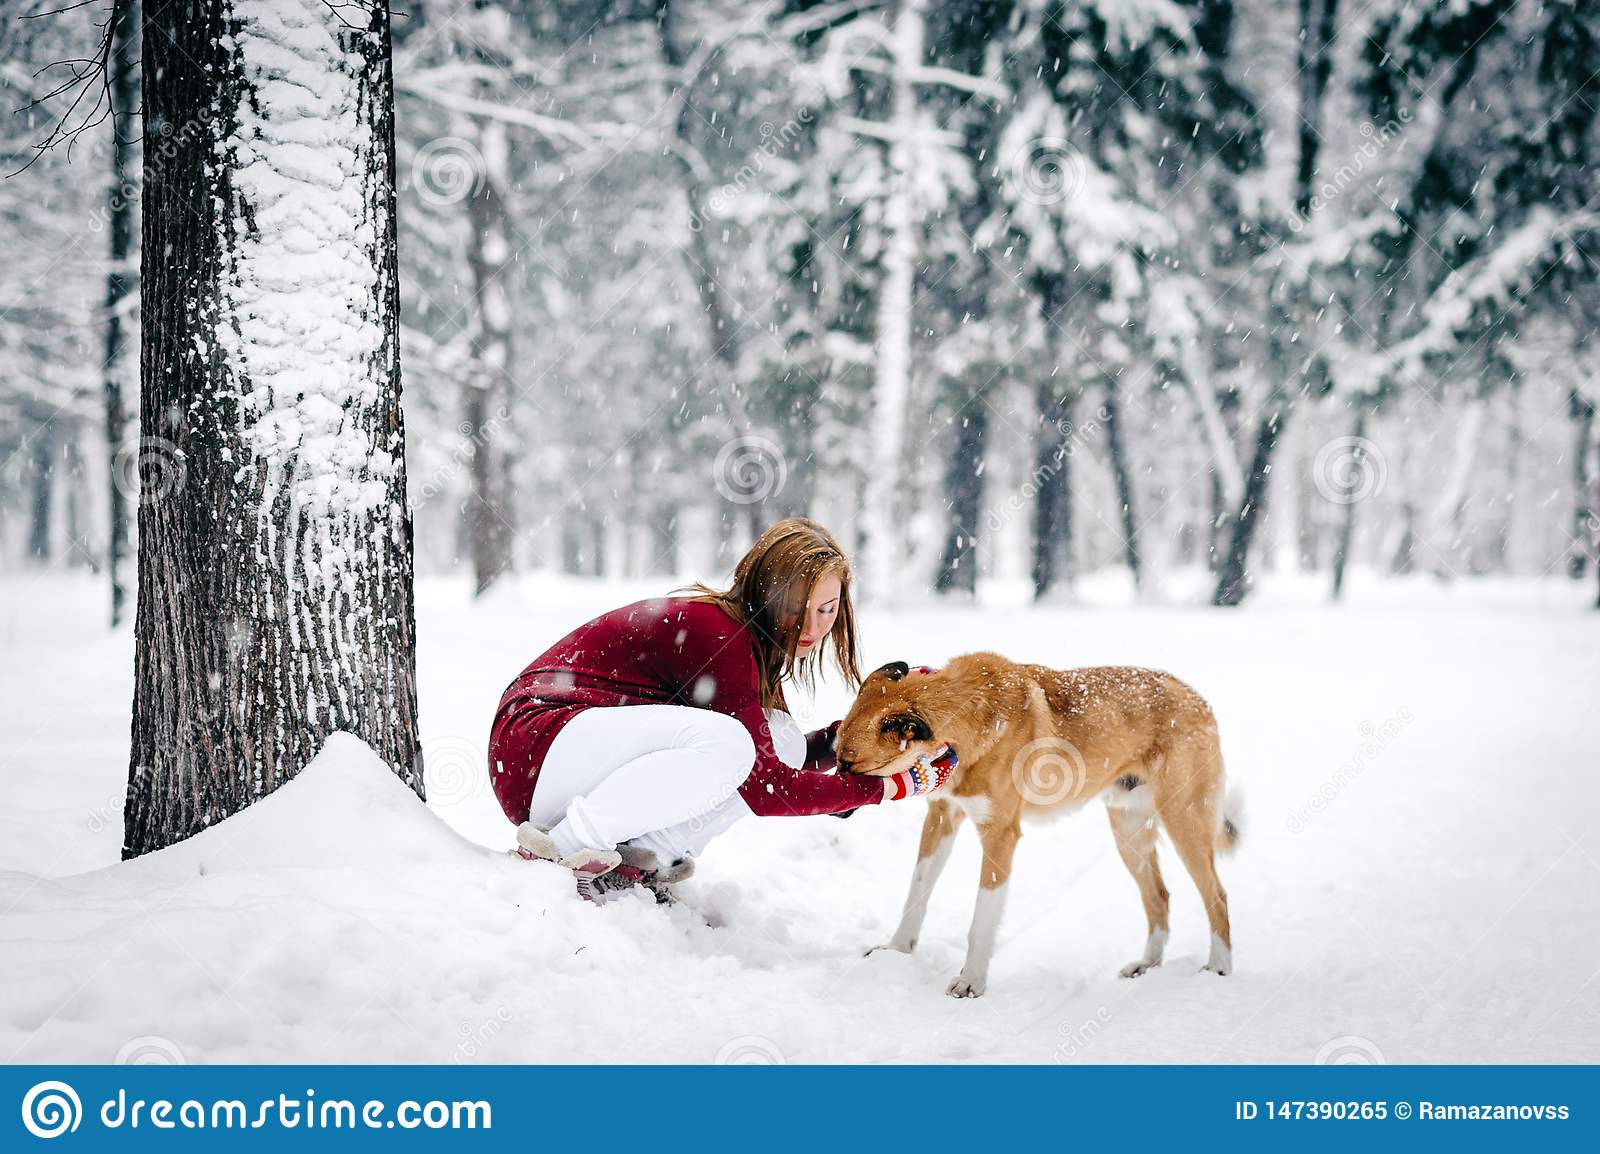 Beautiful girl dressed in a maroon sweater and white pants sat down next to red dog against a backdrop of snow-covered tree trunks